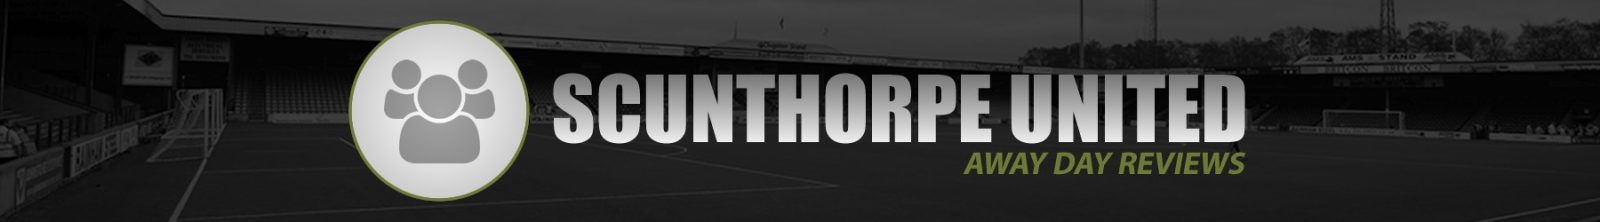 Review Scunthorpe United